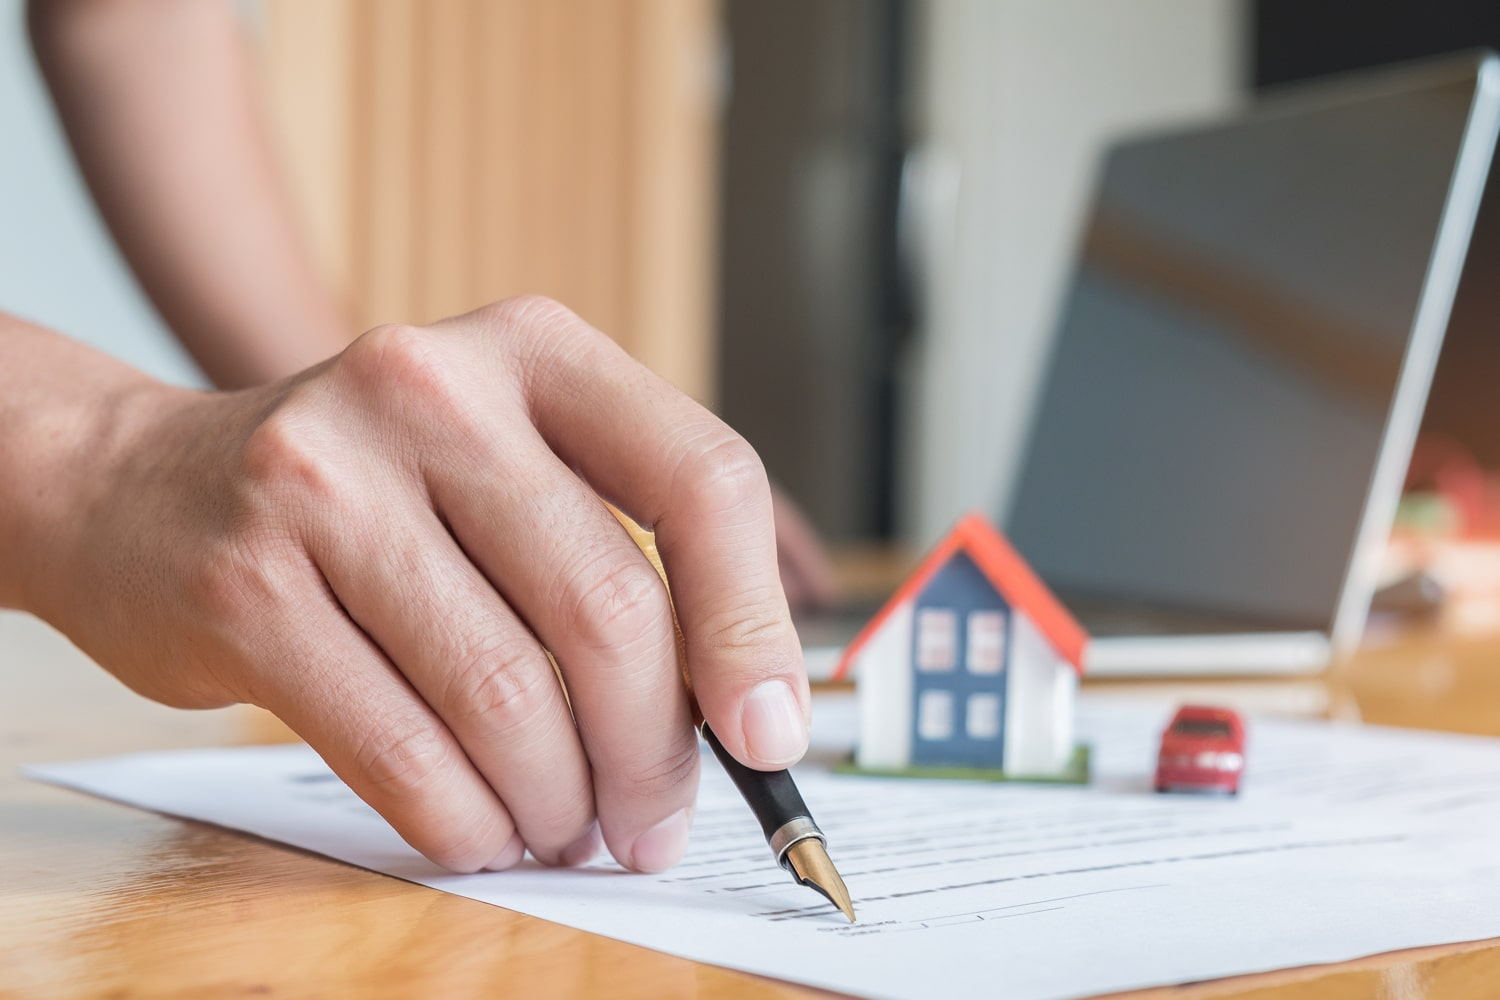 House and insurance research